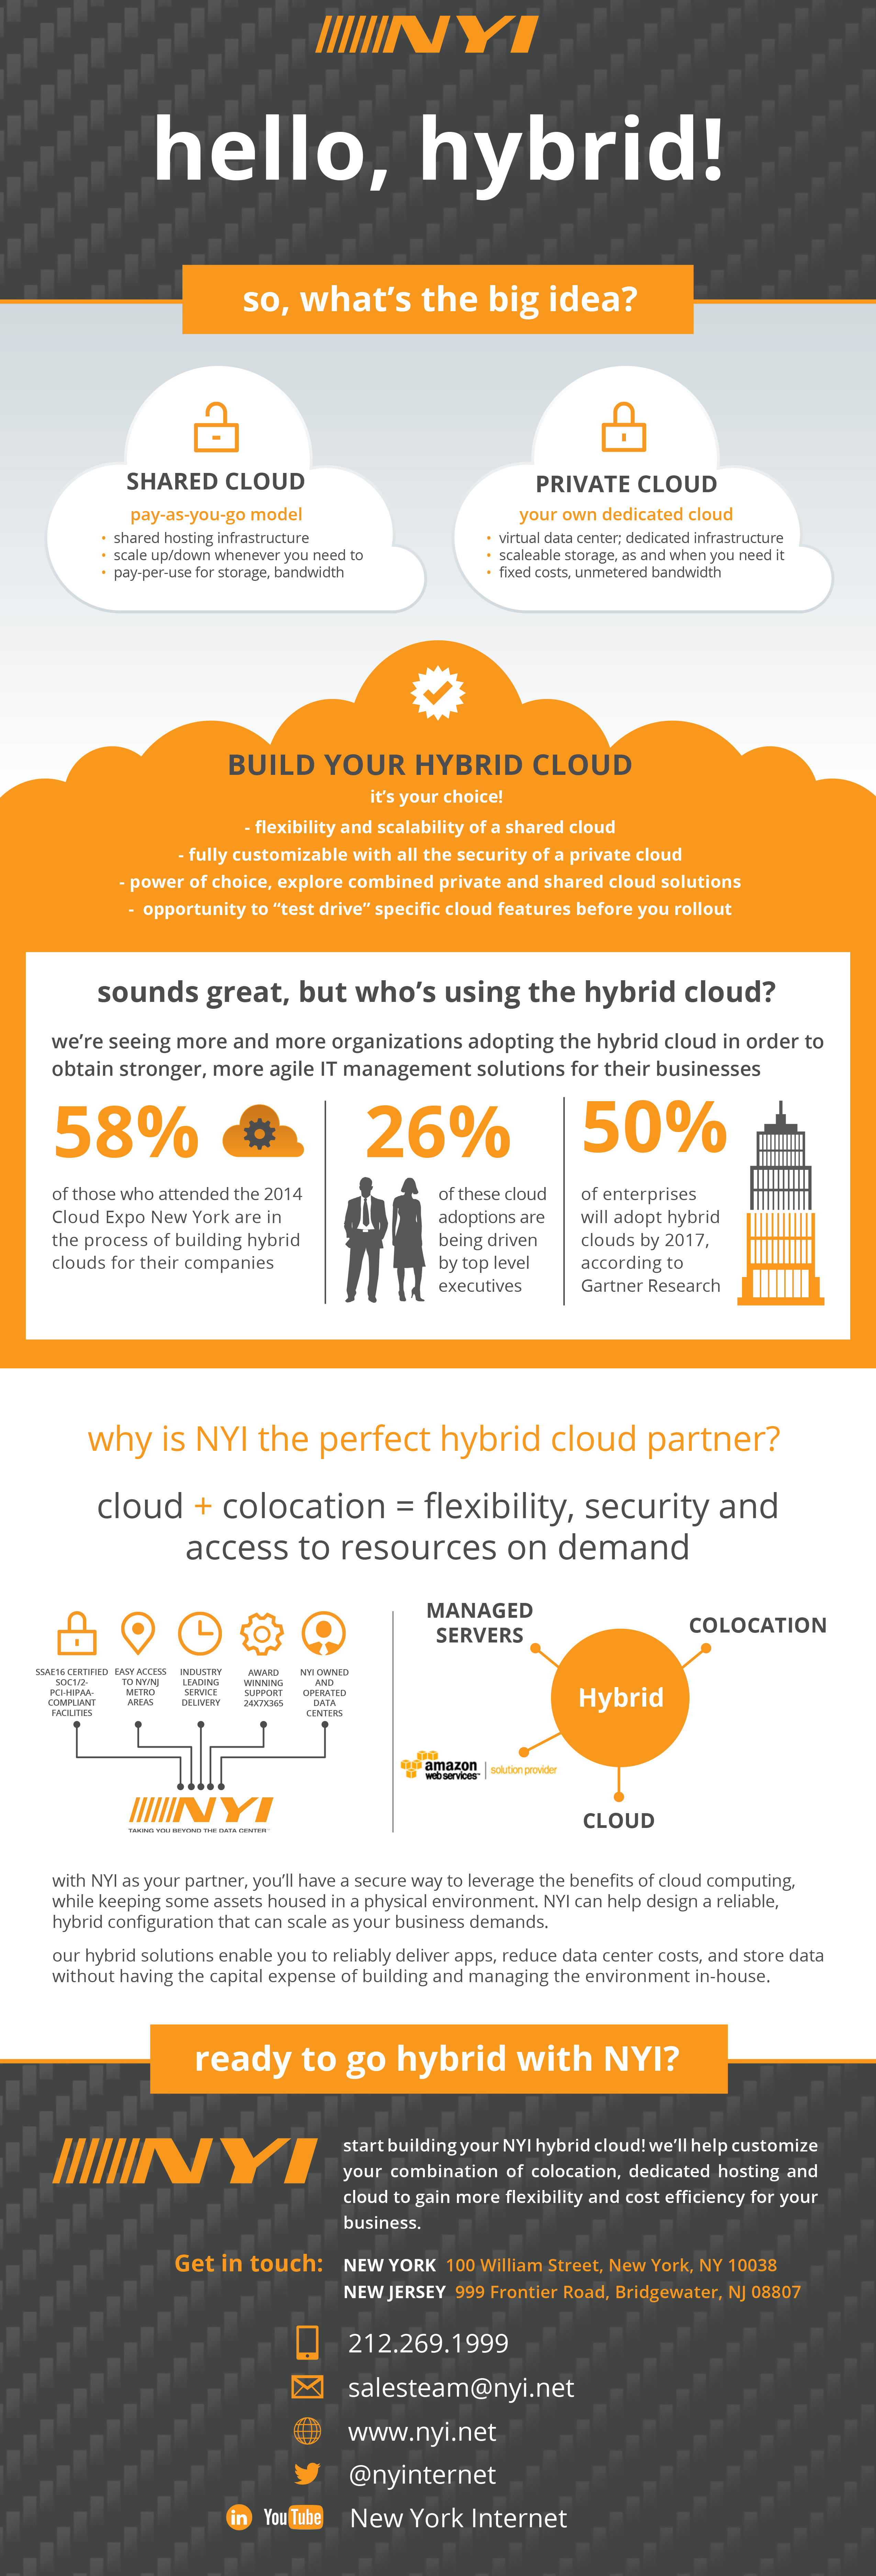 NYI_Infographic_Template_Hybrid_2_previewMW1 (2)